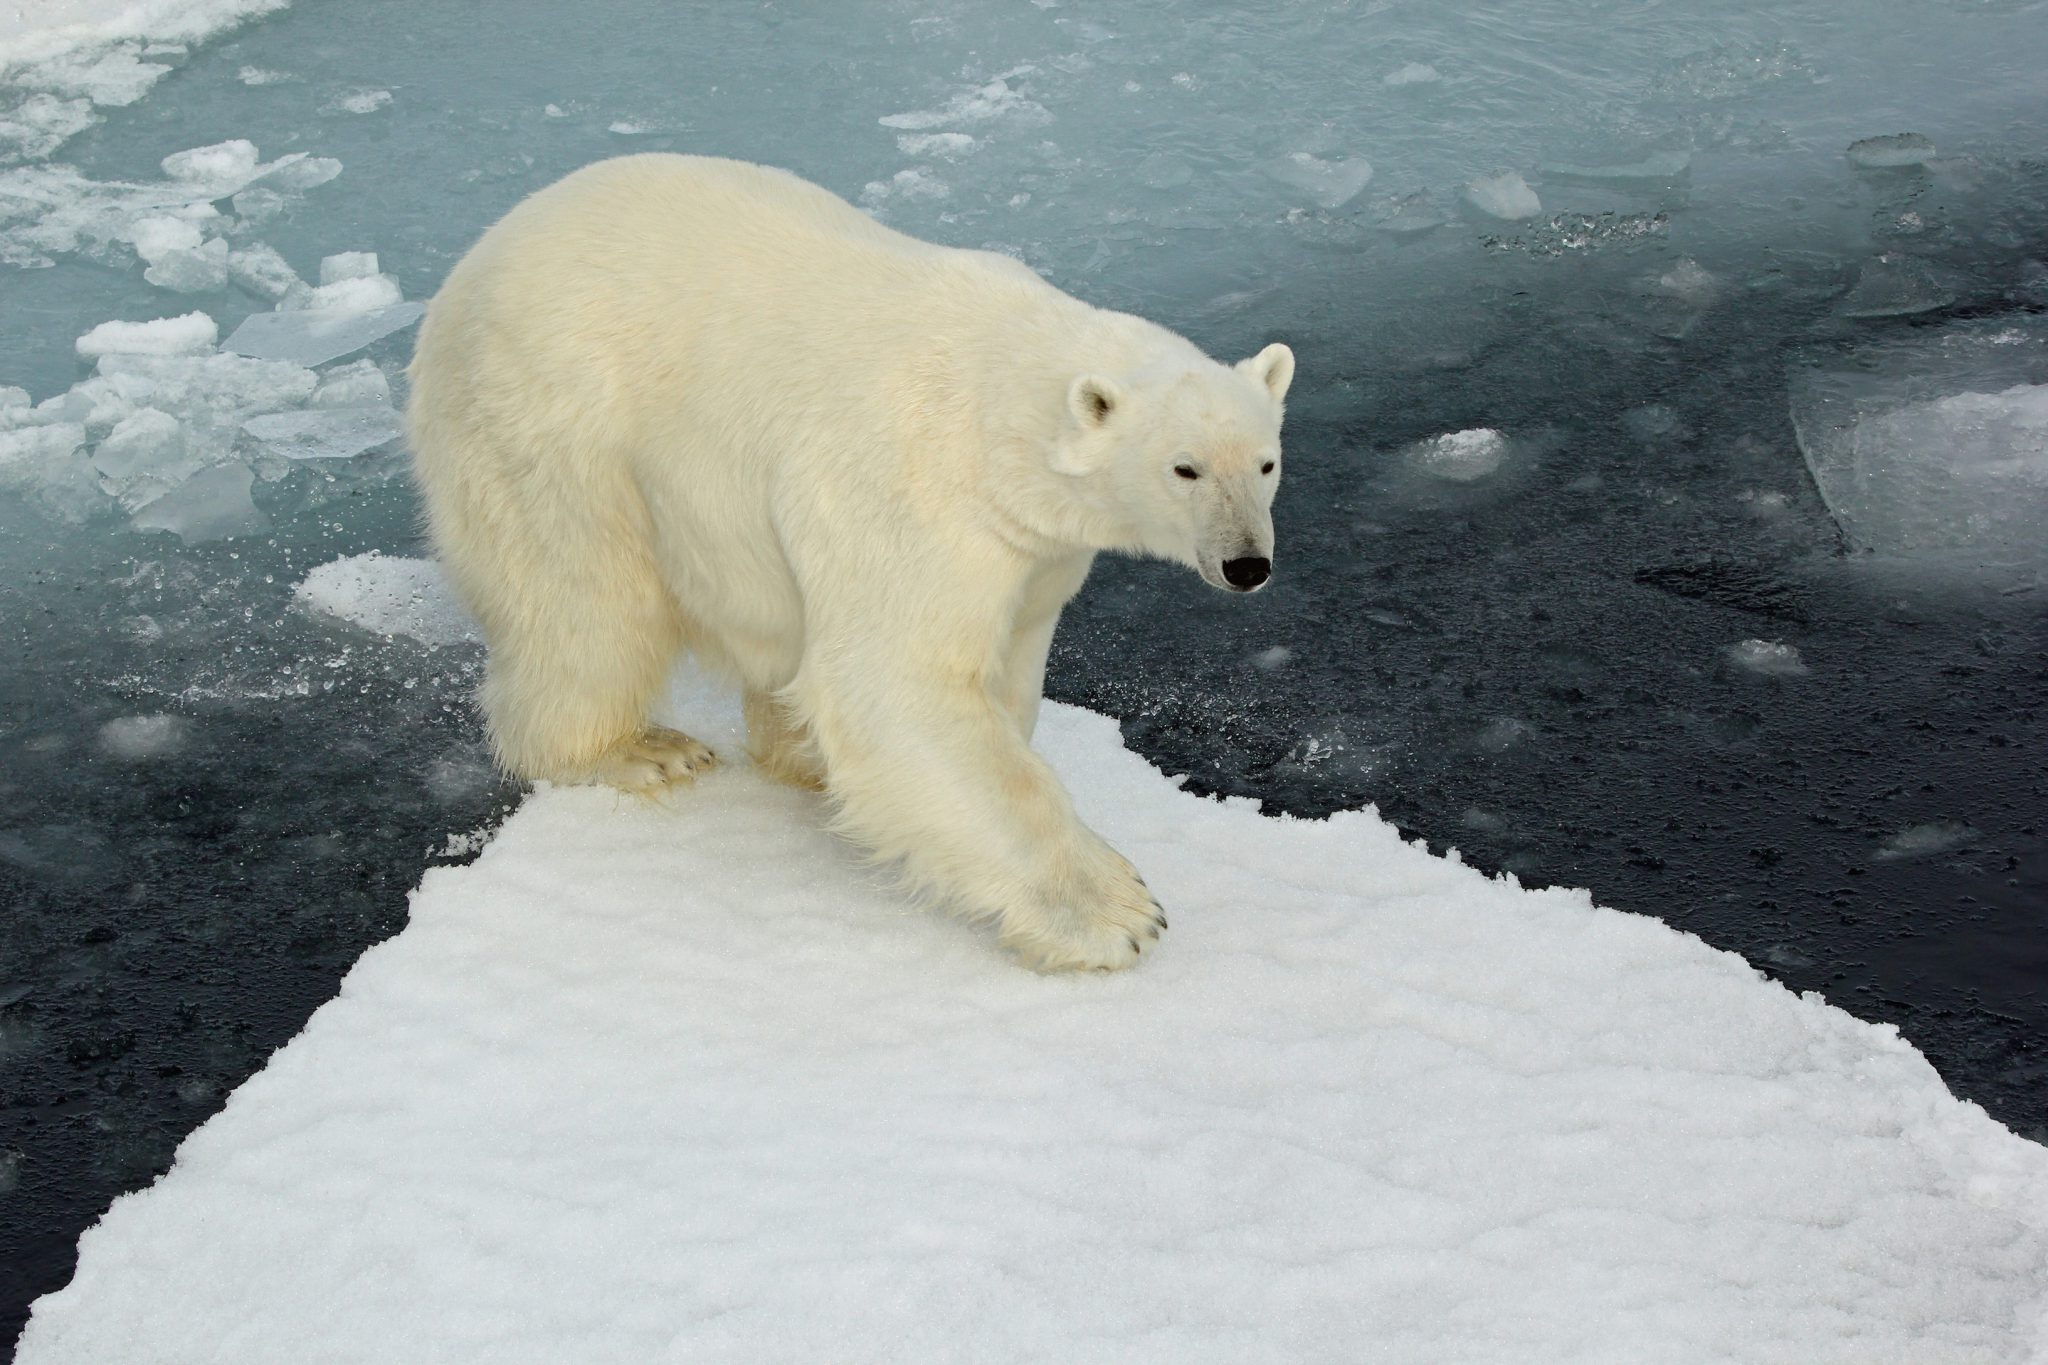 Polar Bear Photo taken by Brian Clasper